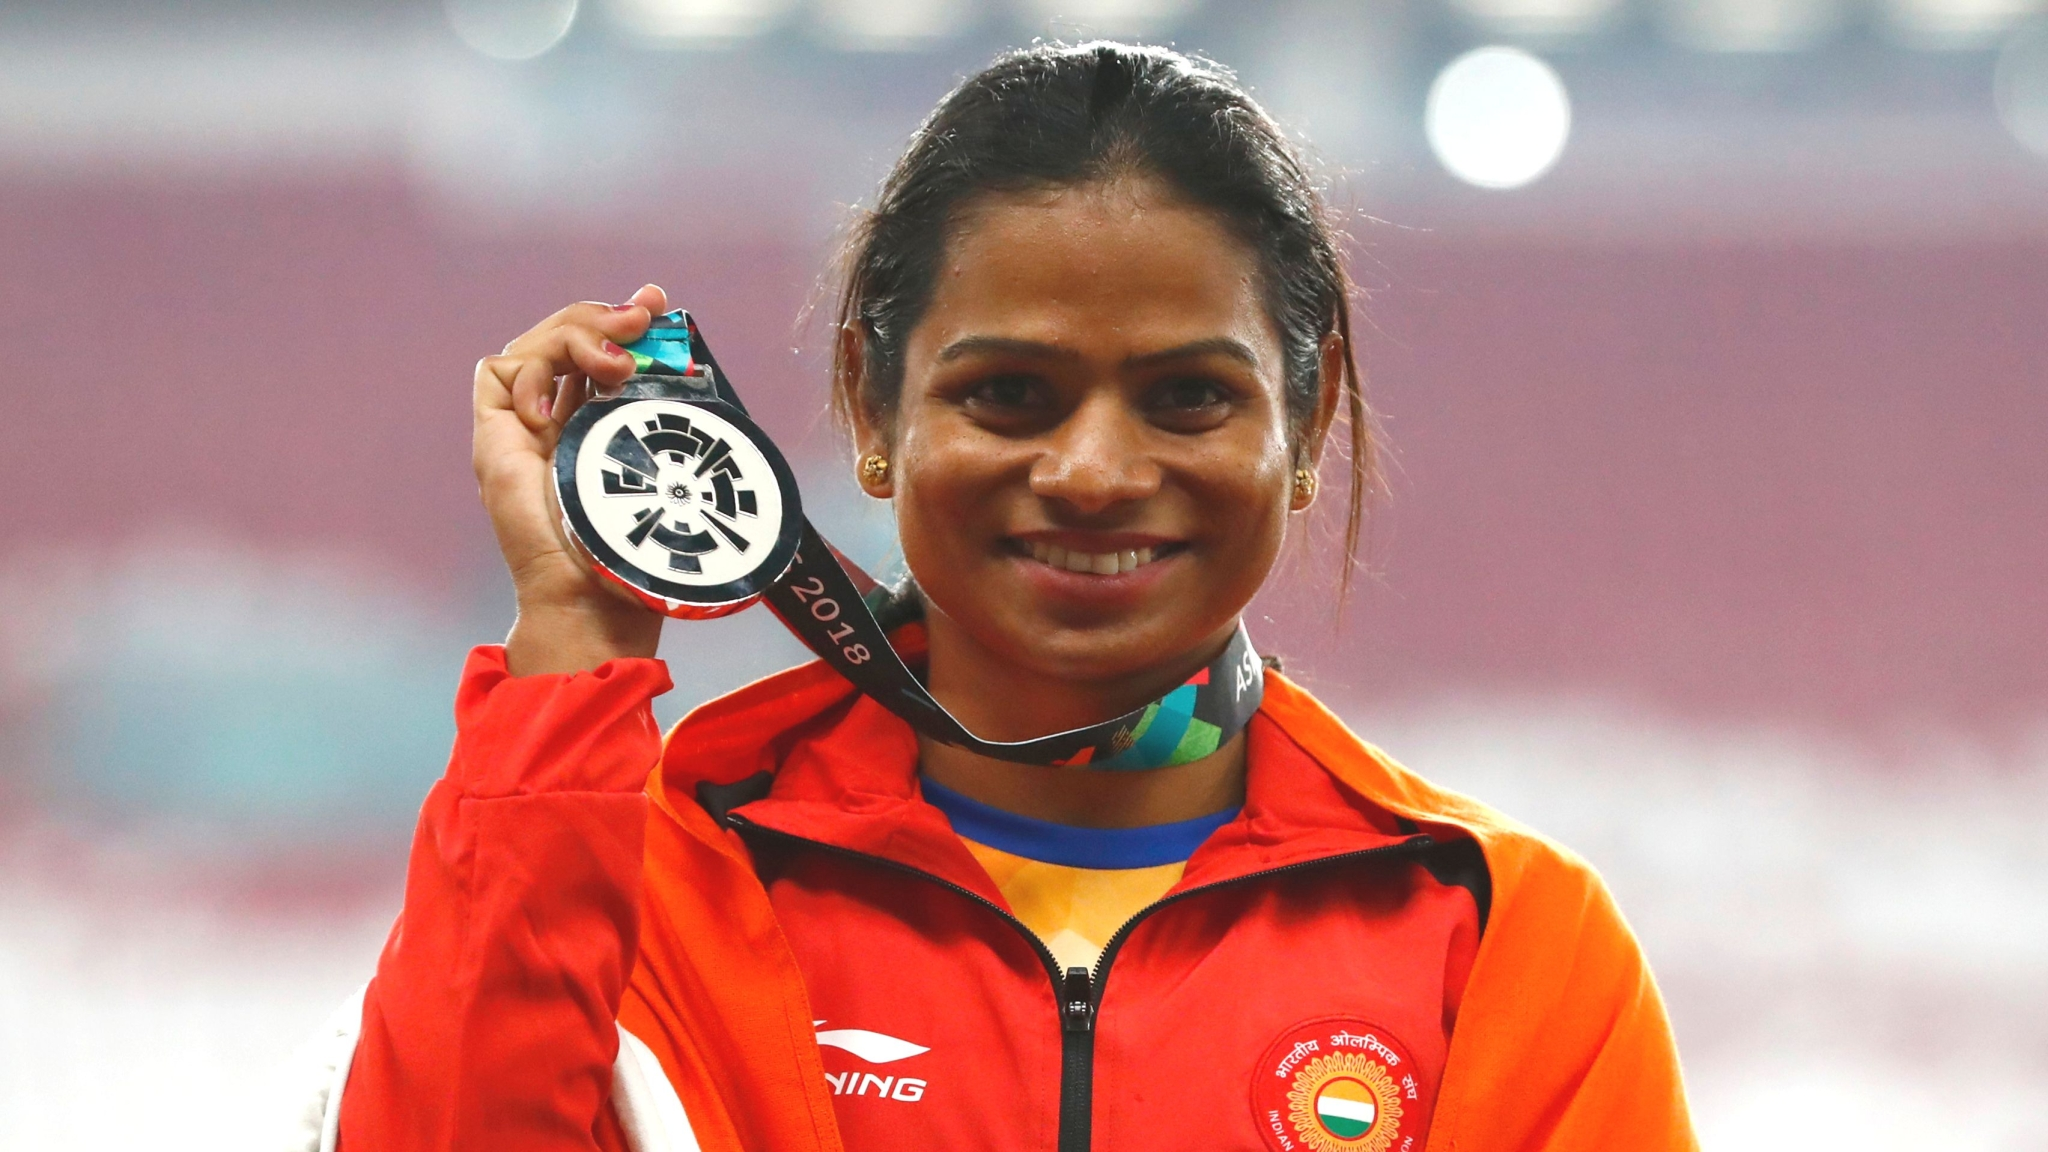 Sprinter Dutee Chand Reveals She's in Same-Sex Relationship